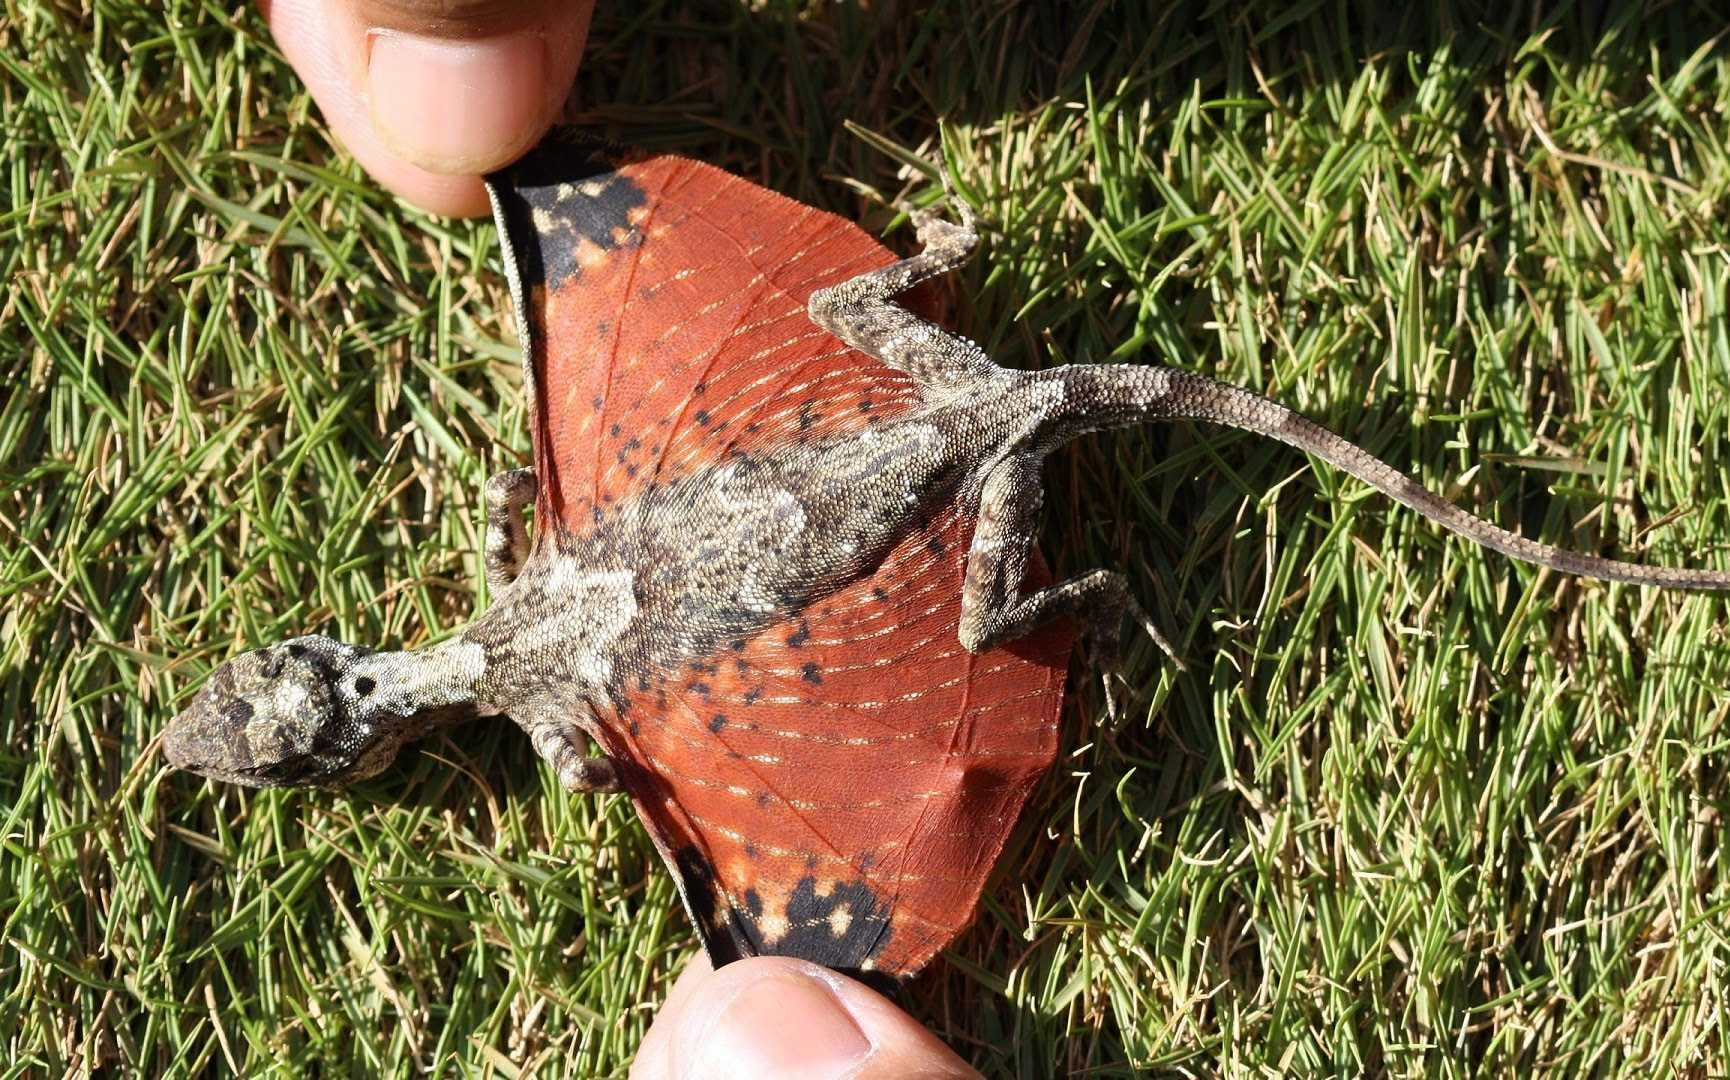 Newly Discovered Lizard Sparks Dragon-Like Fantasies | Dragon